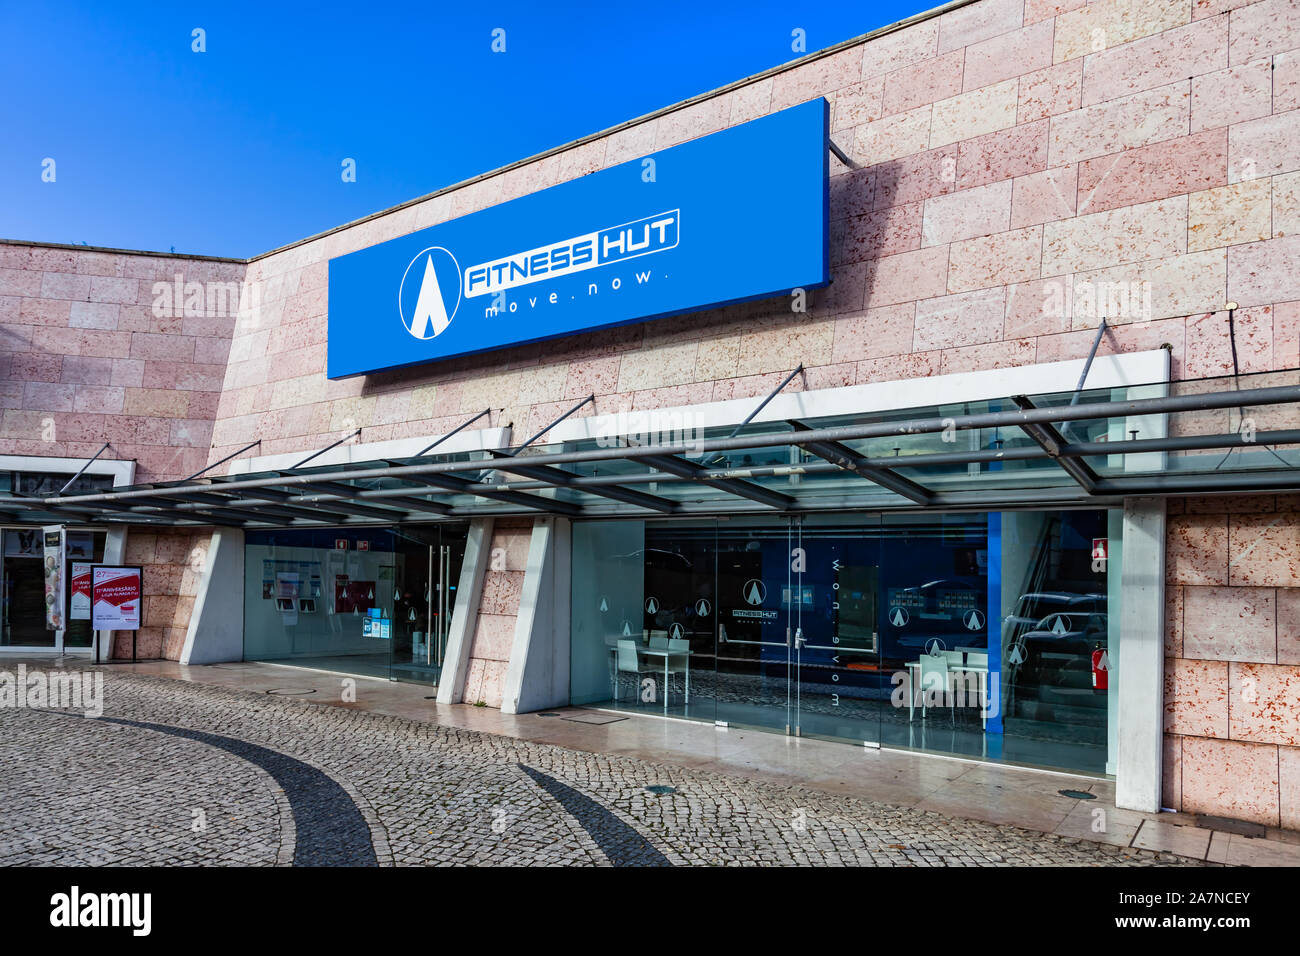 Almada Portugal Fitness Hut Store In The Almada Forum Shopping Mall Or Center Fitness Hut Is Workout Gym Focused On Premium Services At Low Cost Stock Photo Alamy